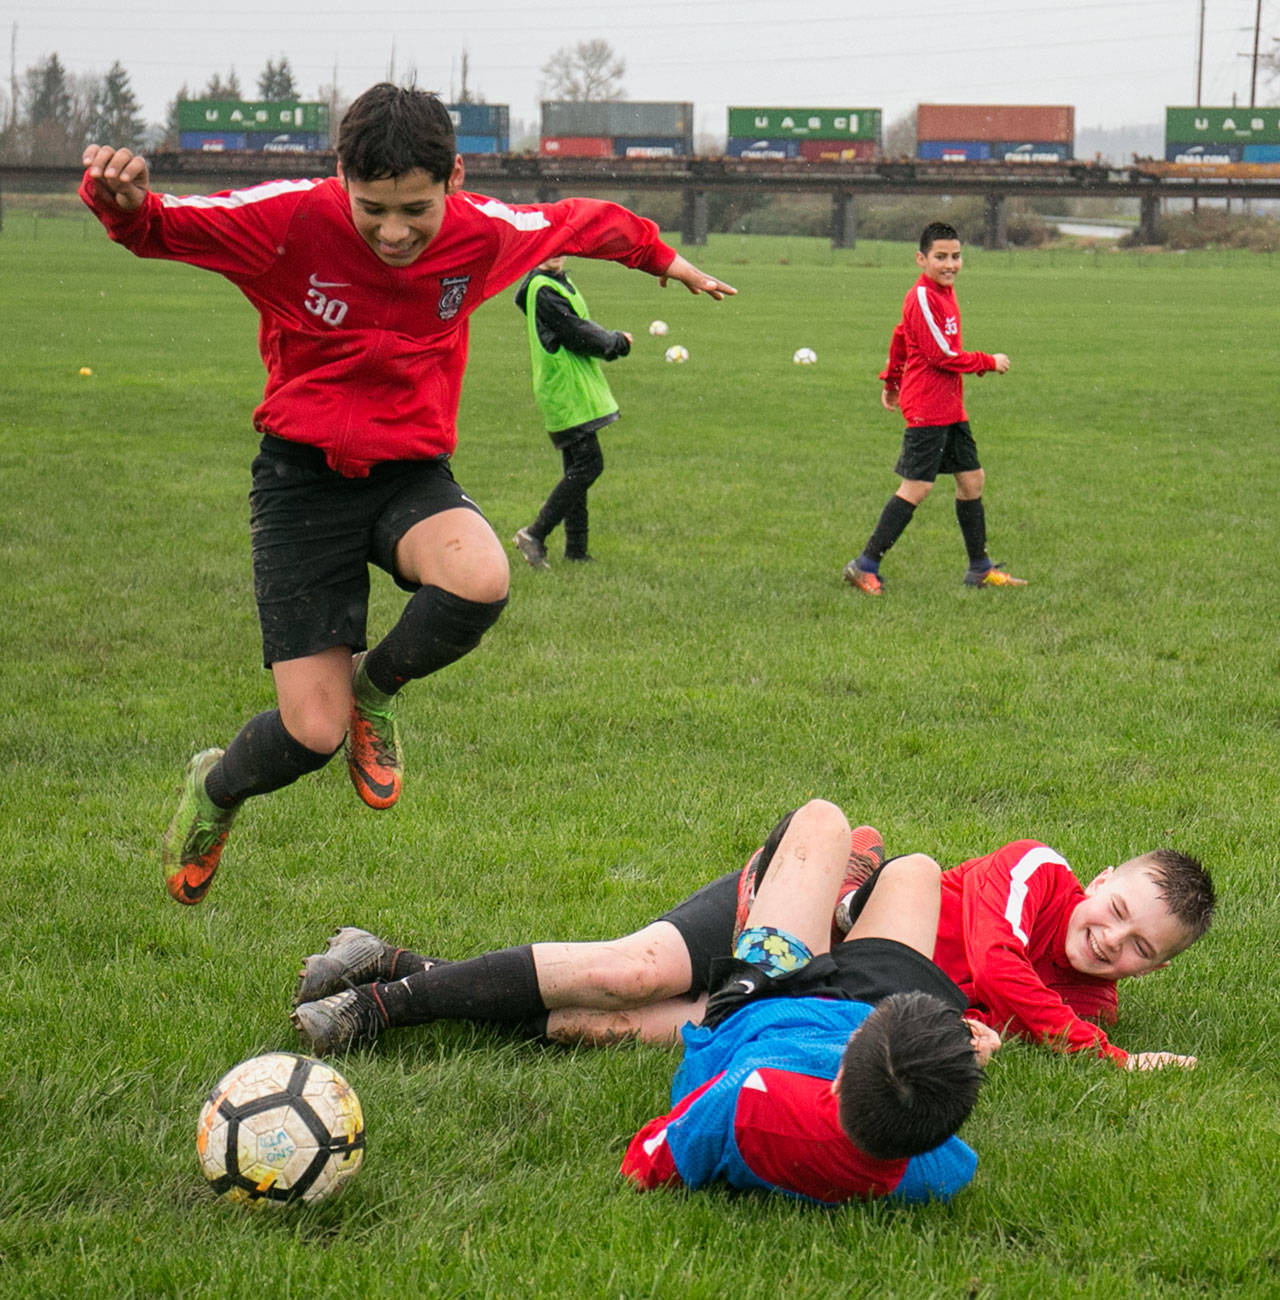 Gerardo Avalos-Ayala (left) hurdles over Cason Chadd (top) and Acxel Gonzalez-Lara (bottom) after the latter two players collided during a Snohomish Youth Soccer Club Development Academy scrimmage at Stocker Fields on April 5 in Snohomish. (Kevin Clark / The Daily Herald)